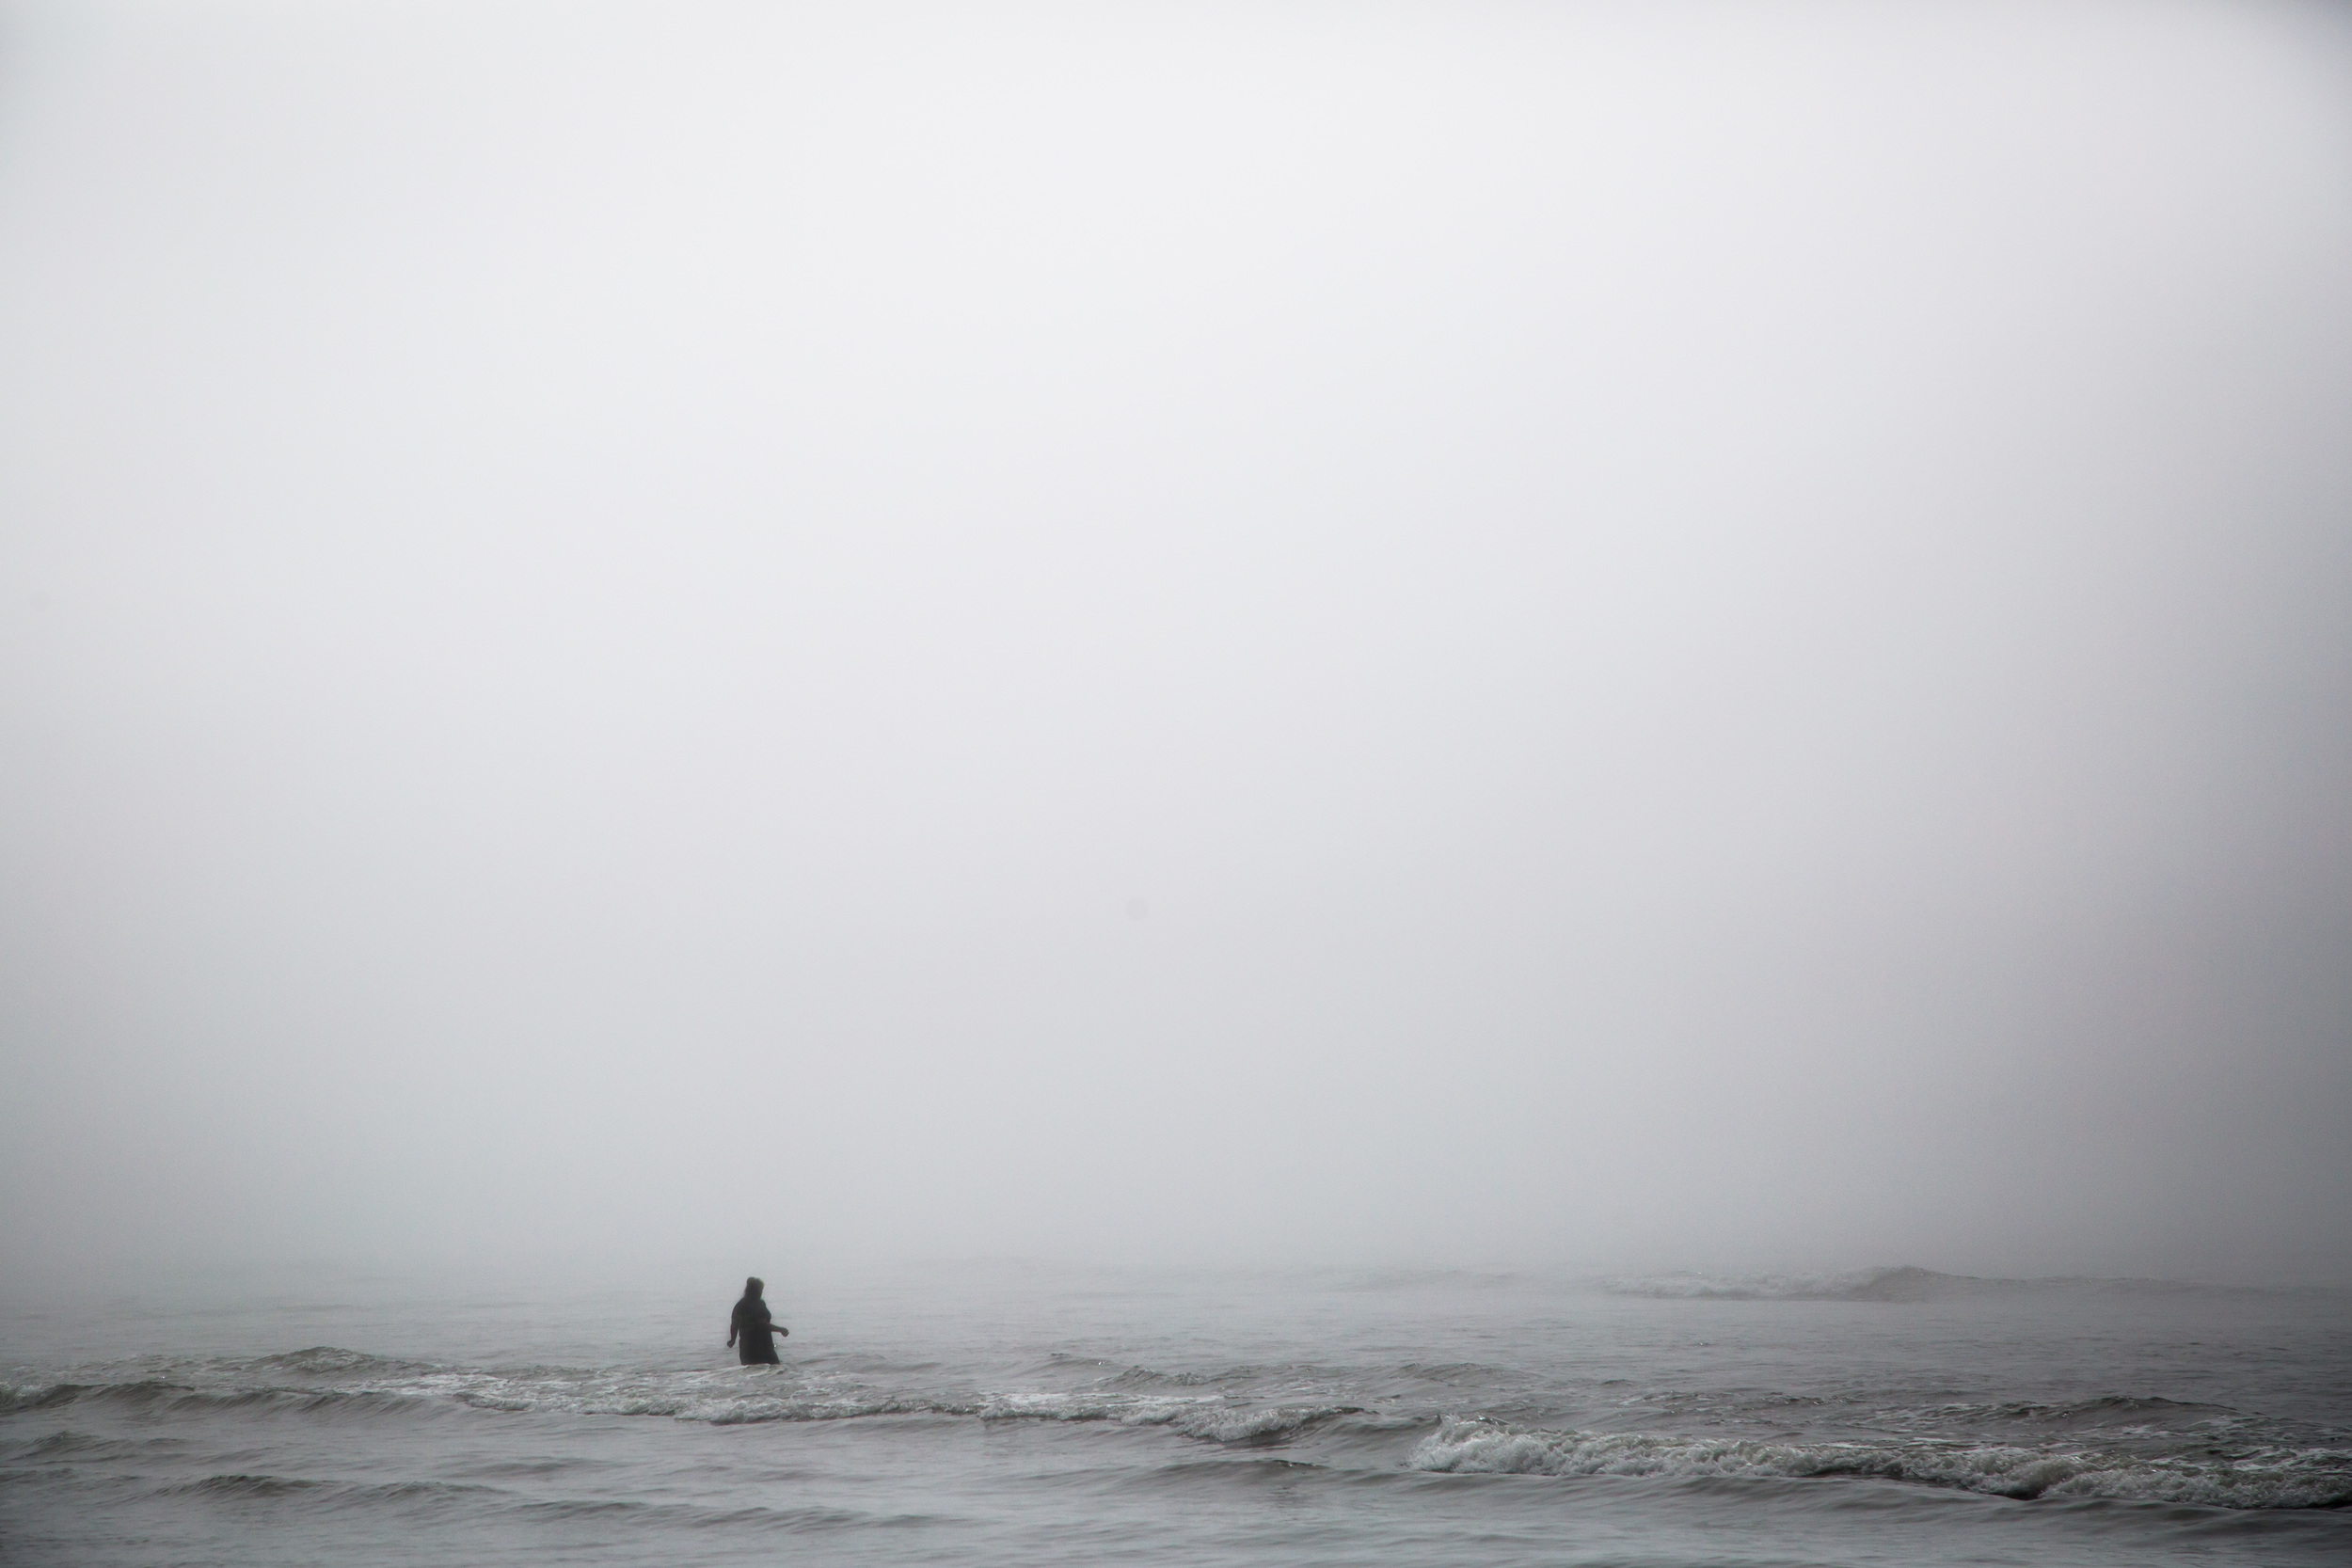 A very foggy day nearly consumes the figure of a person wading into the waves at Kalaloch Beach on August 28, 2015.